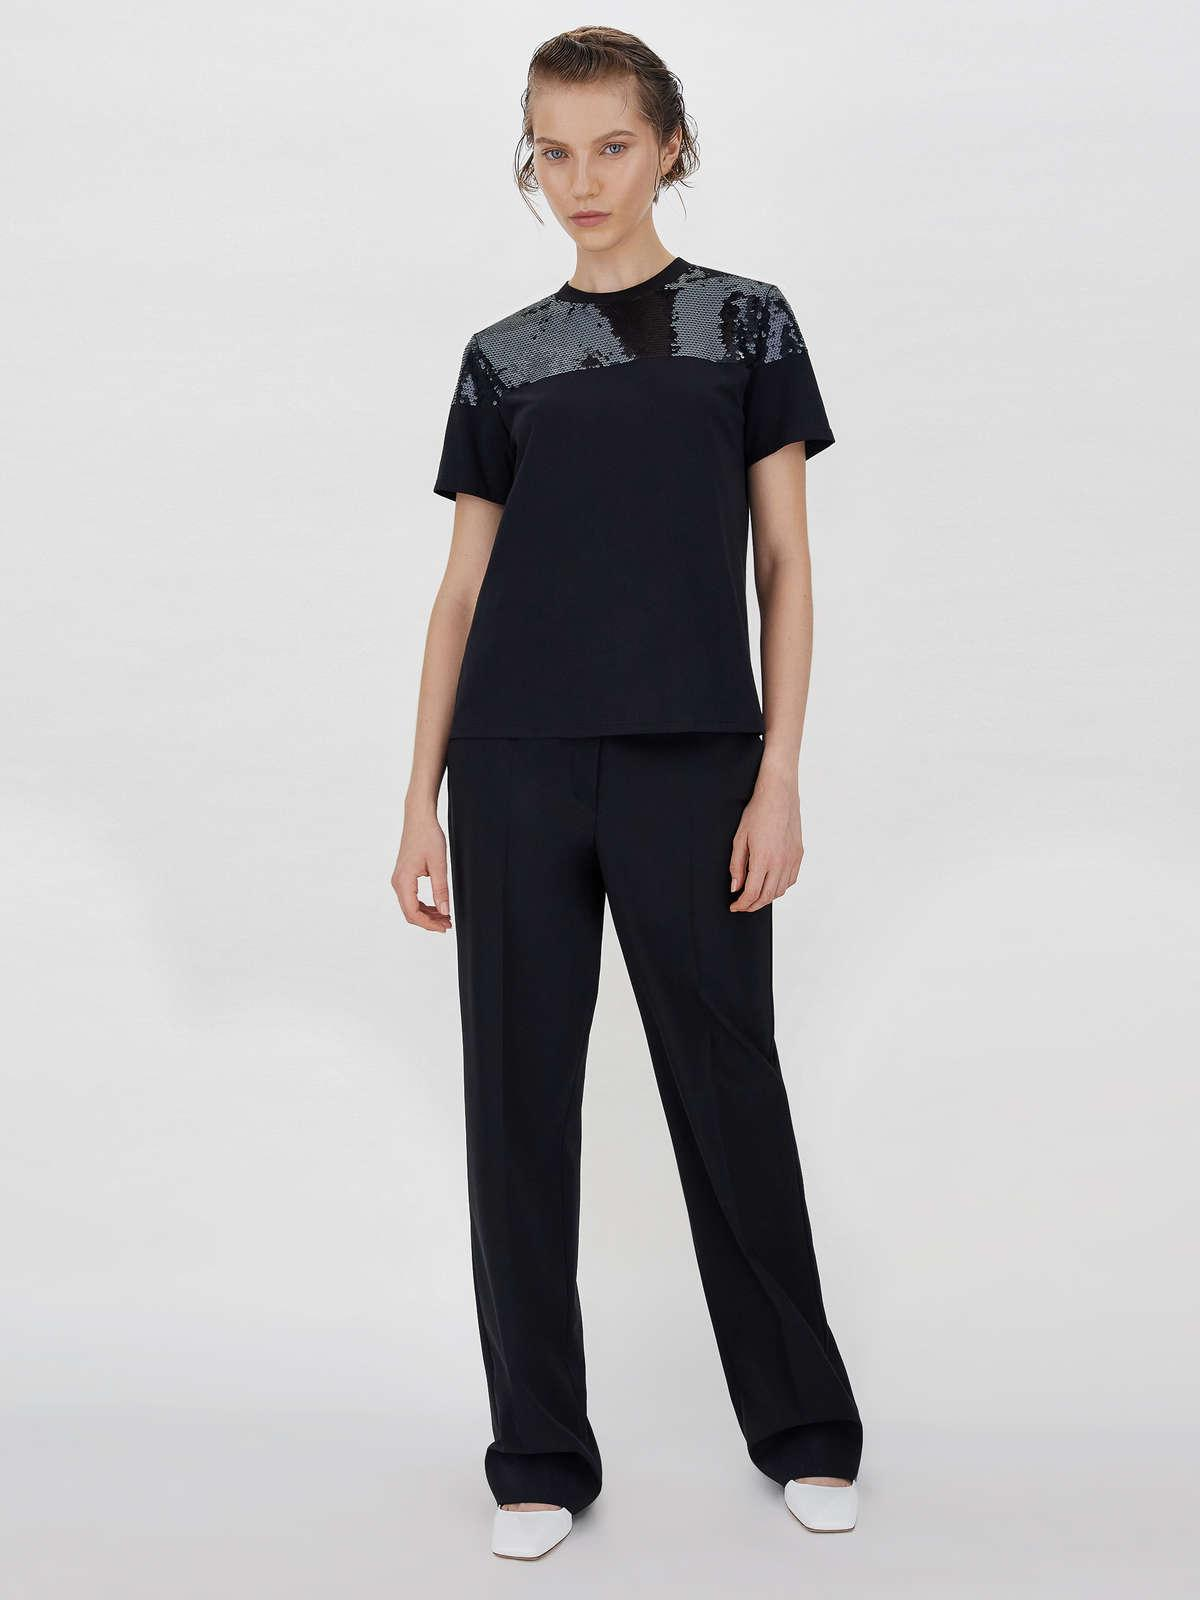 Womens Max Mara Tops And T-Shirts   Embroidery And Sequin-Embellished T-Shirt Black